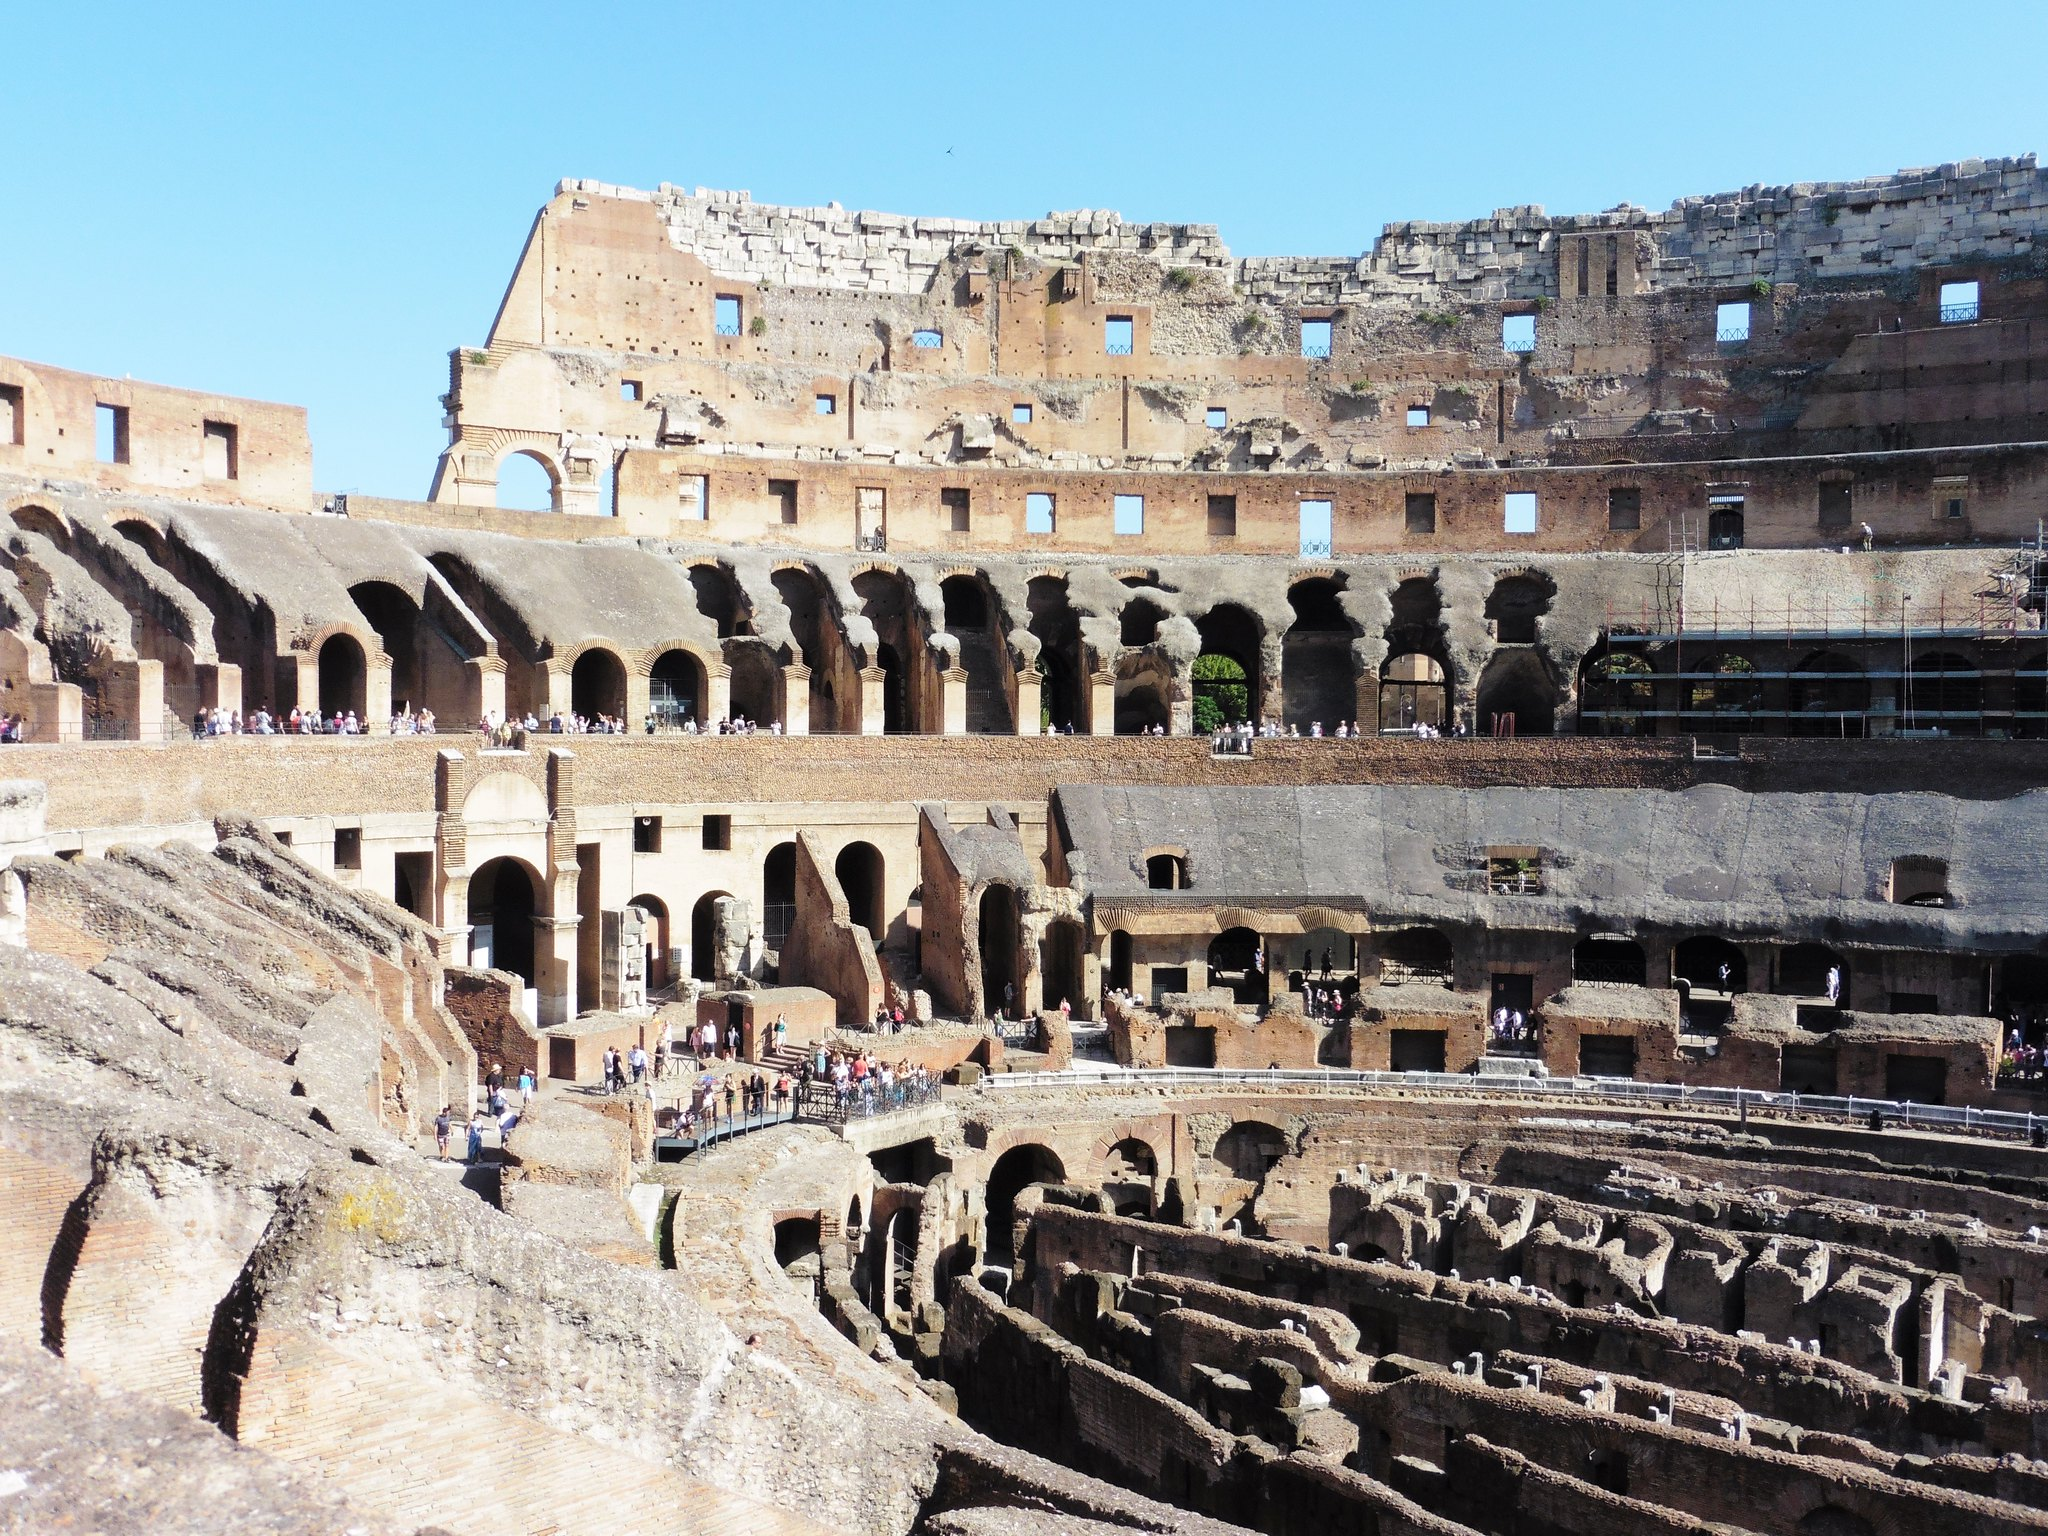 Interior View of The Colosseum